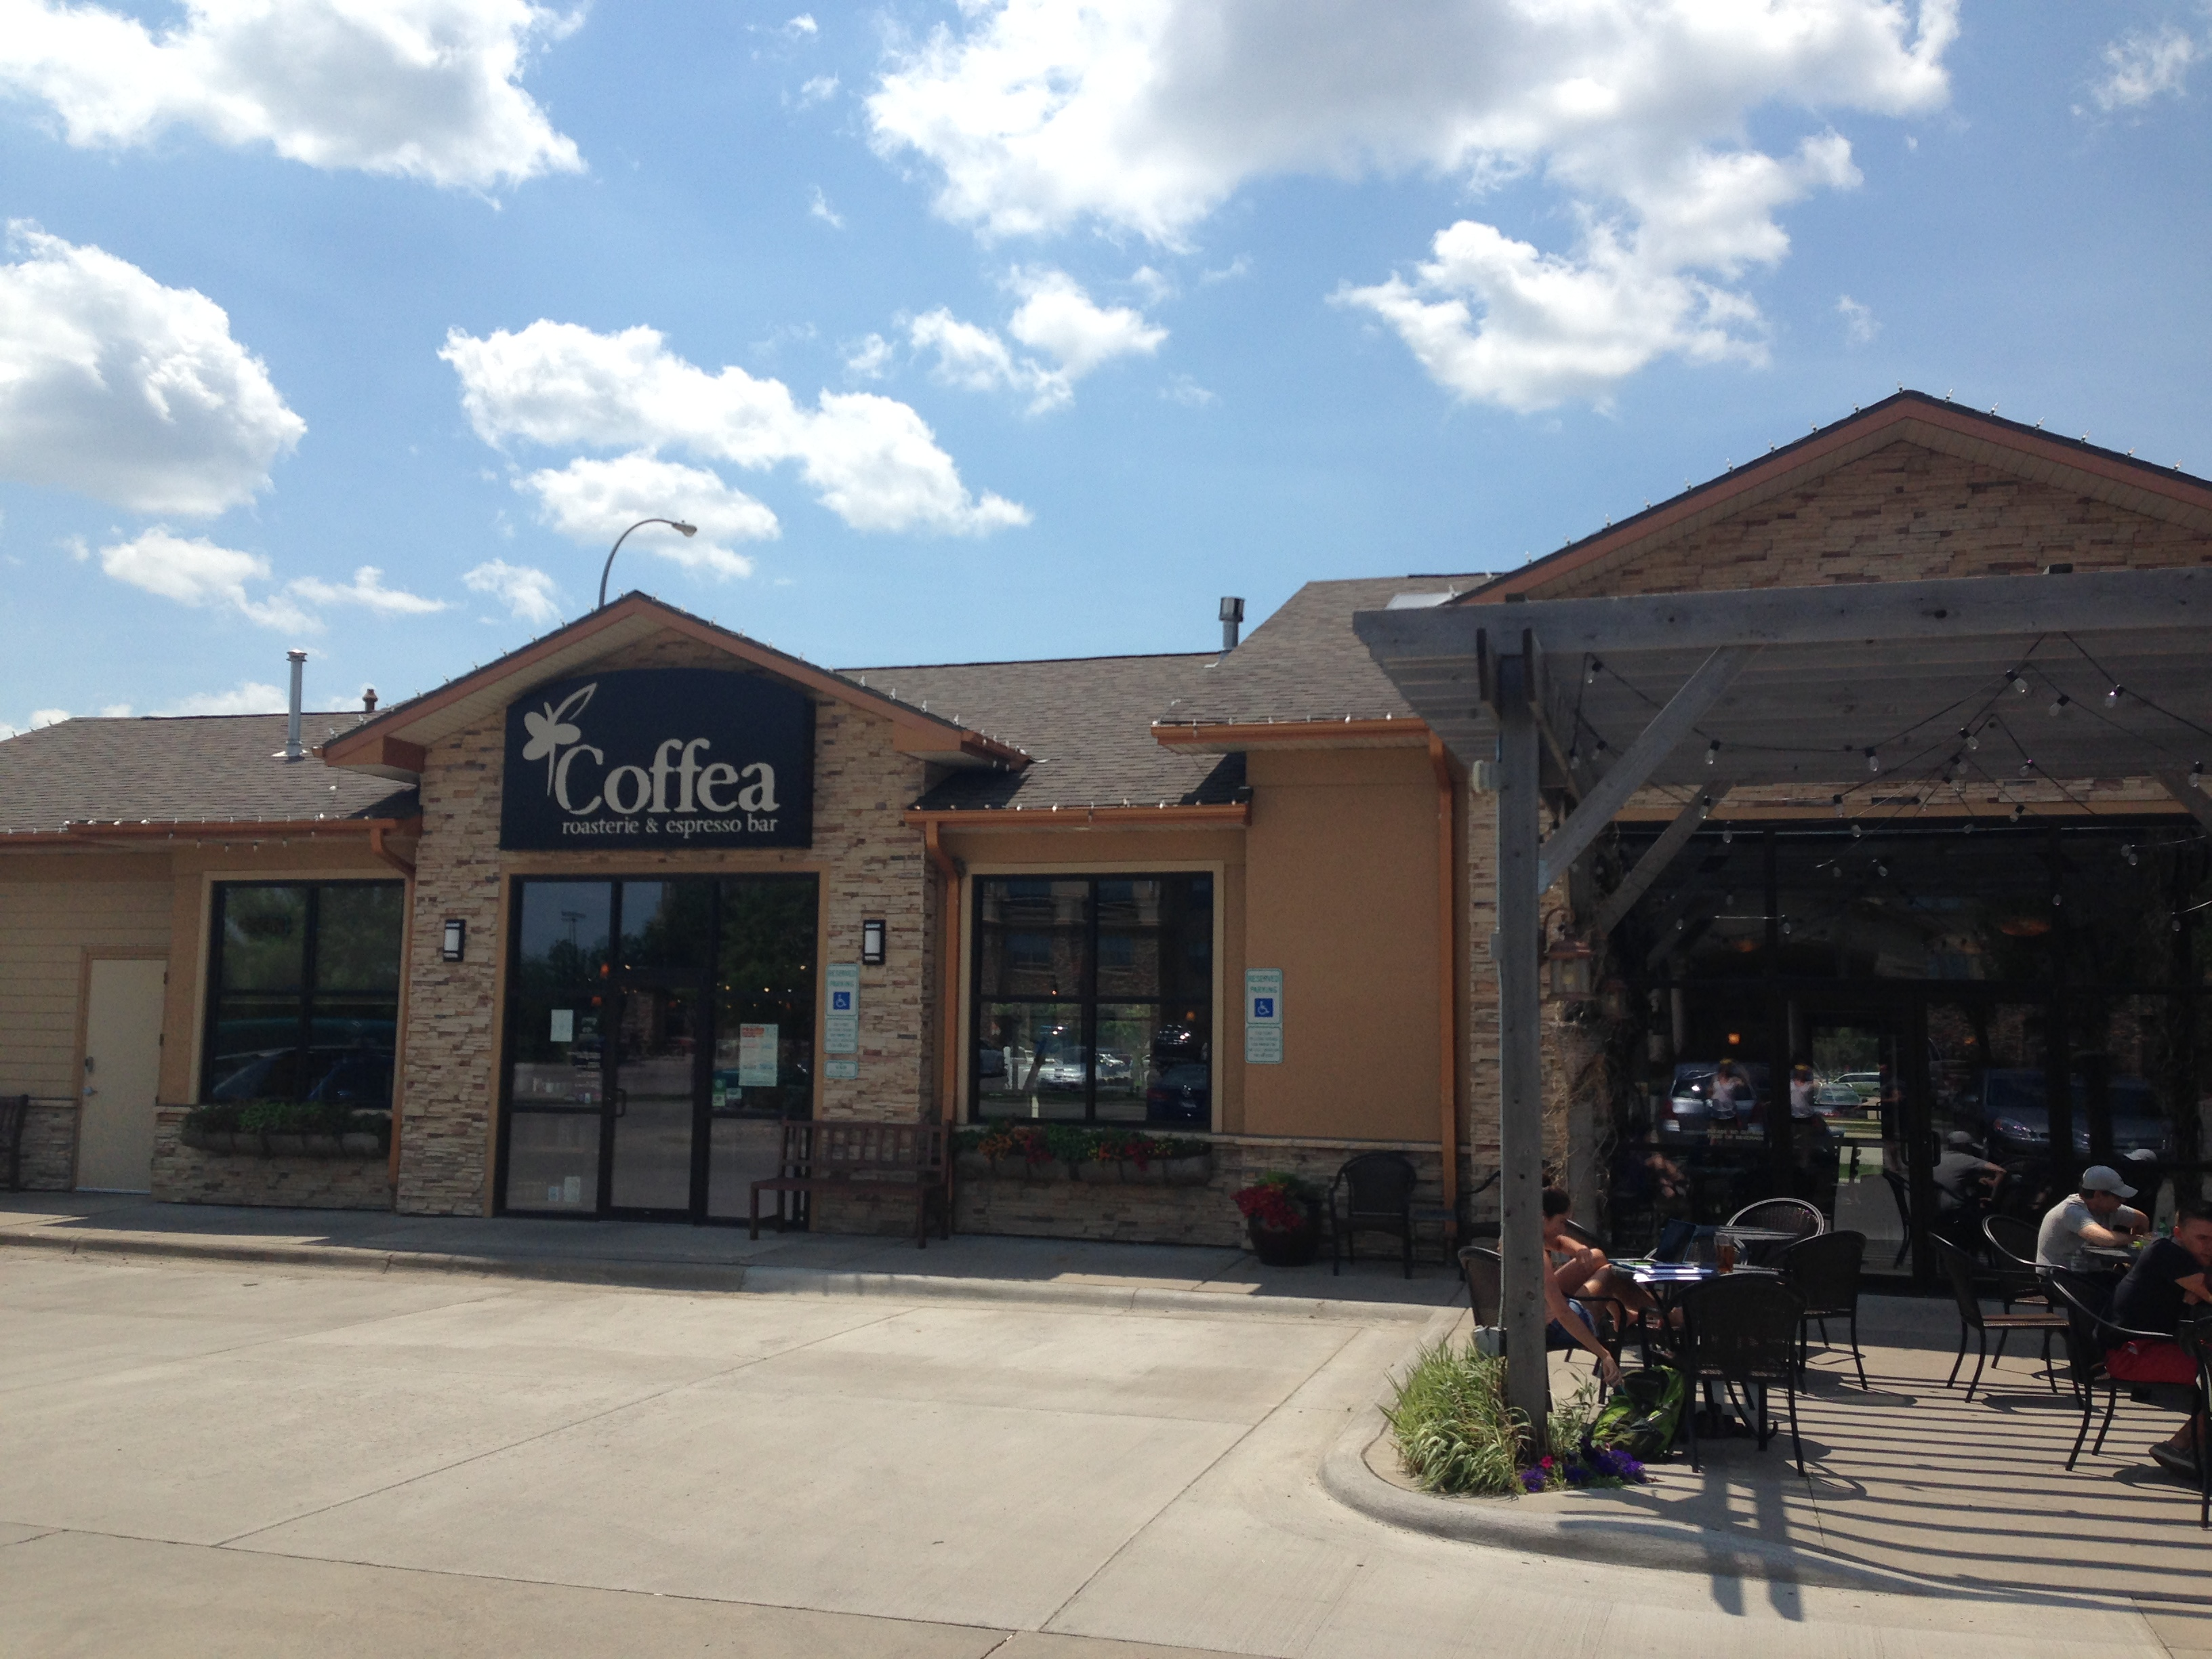 Coffea coffee shop in Sioux Falls